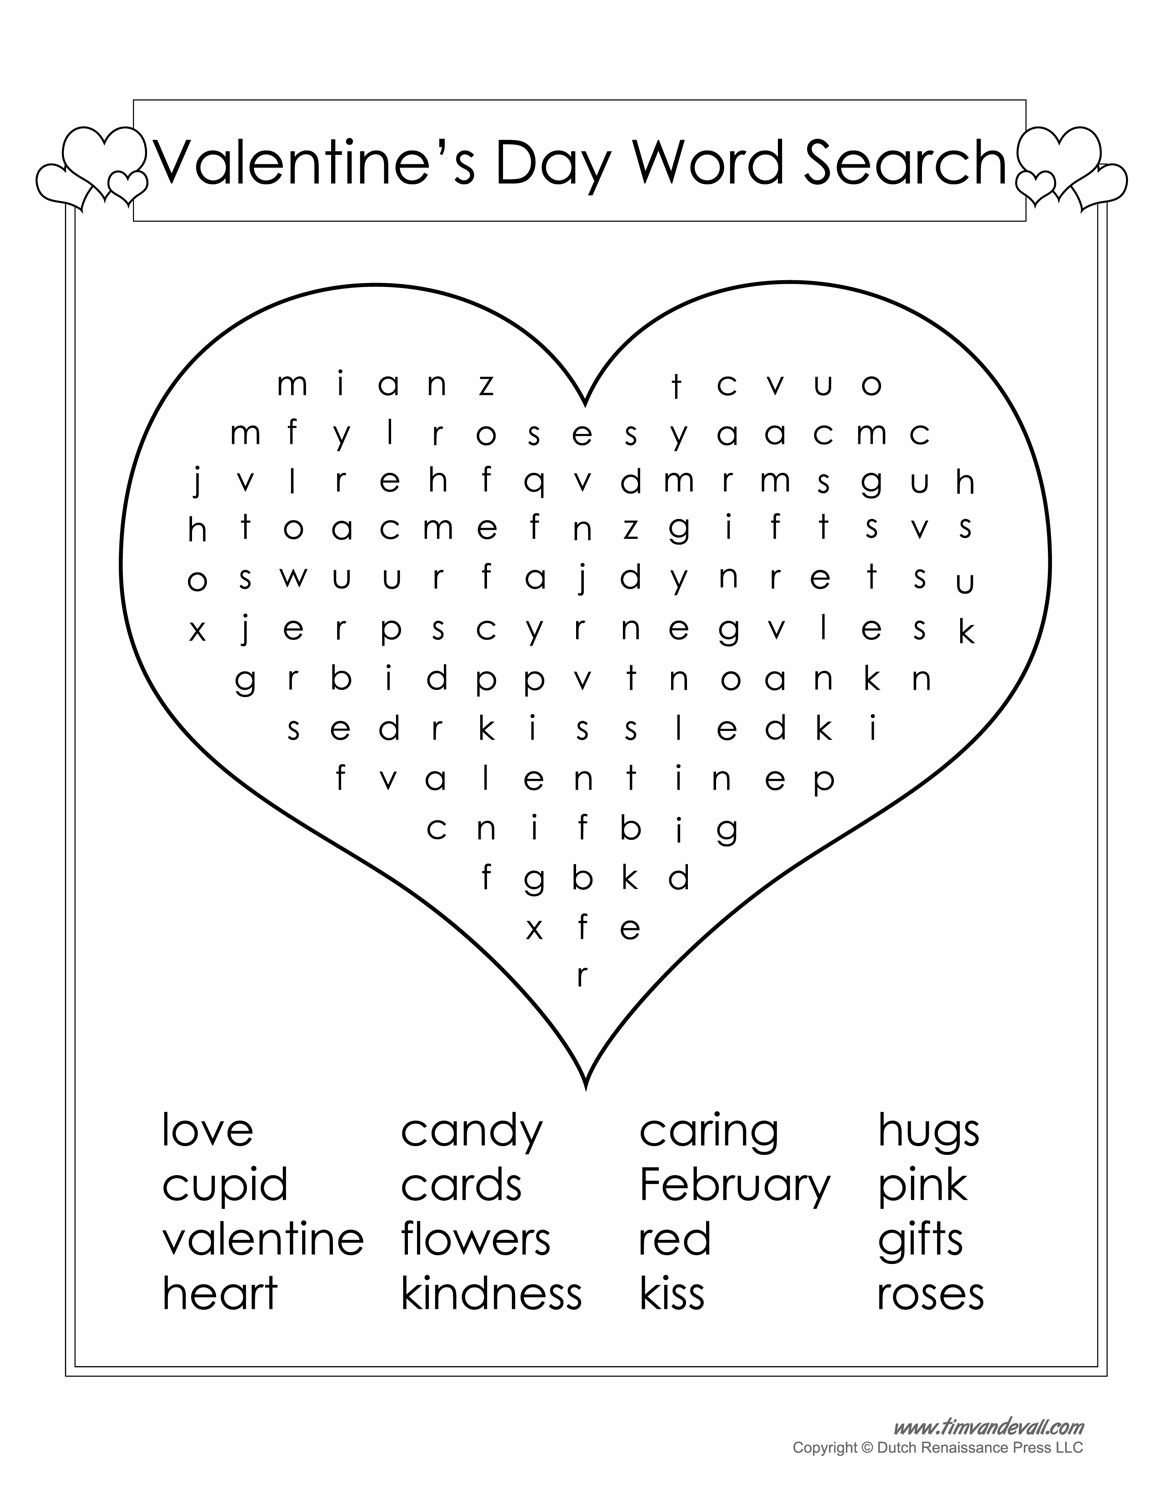 12 Valentine's Day Word Search | Kittybabylove - Free Printable Valentine Puzzle